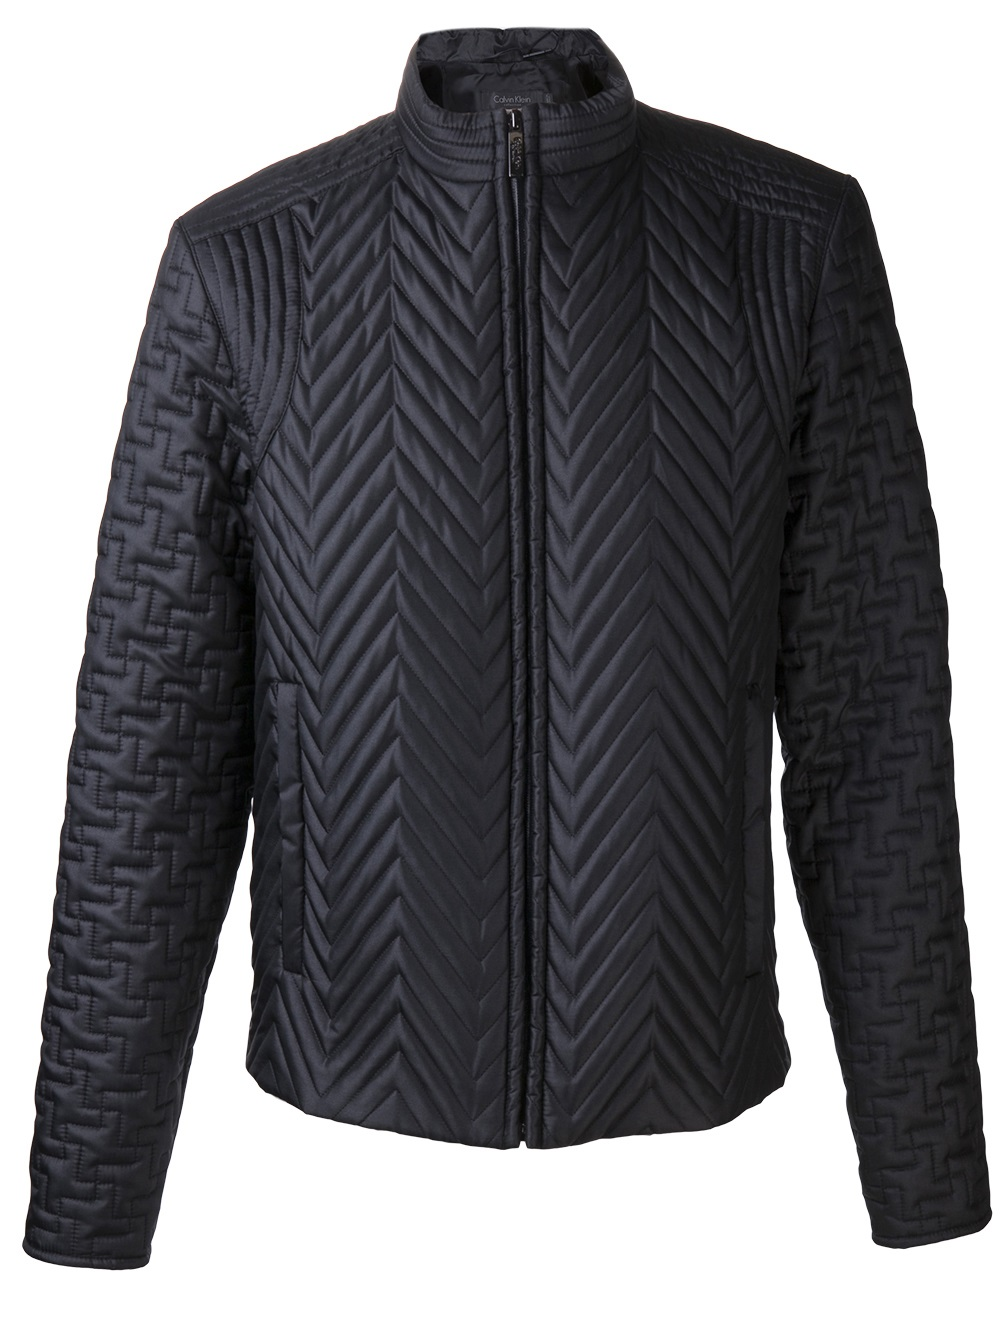 Lyst Calvin Klein Quilted Bomber Jacket In Black For Men